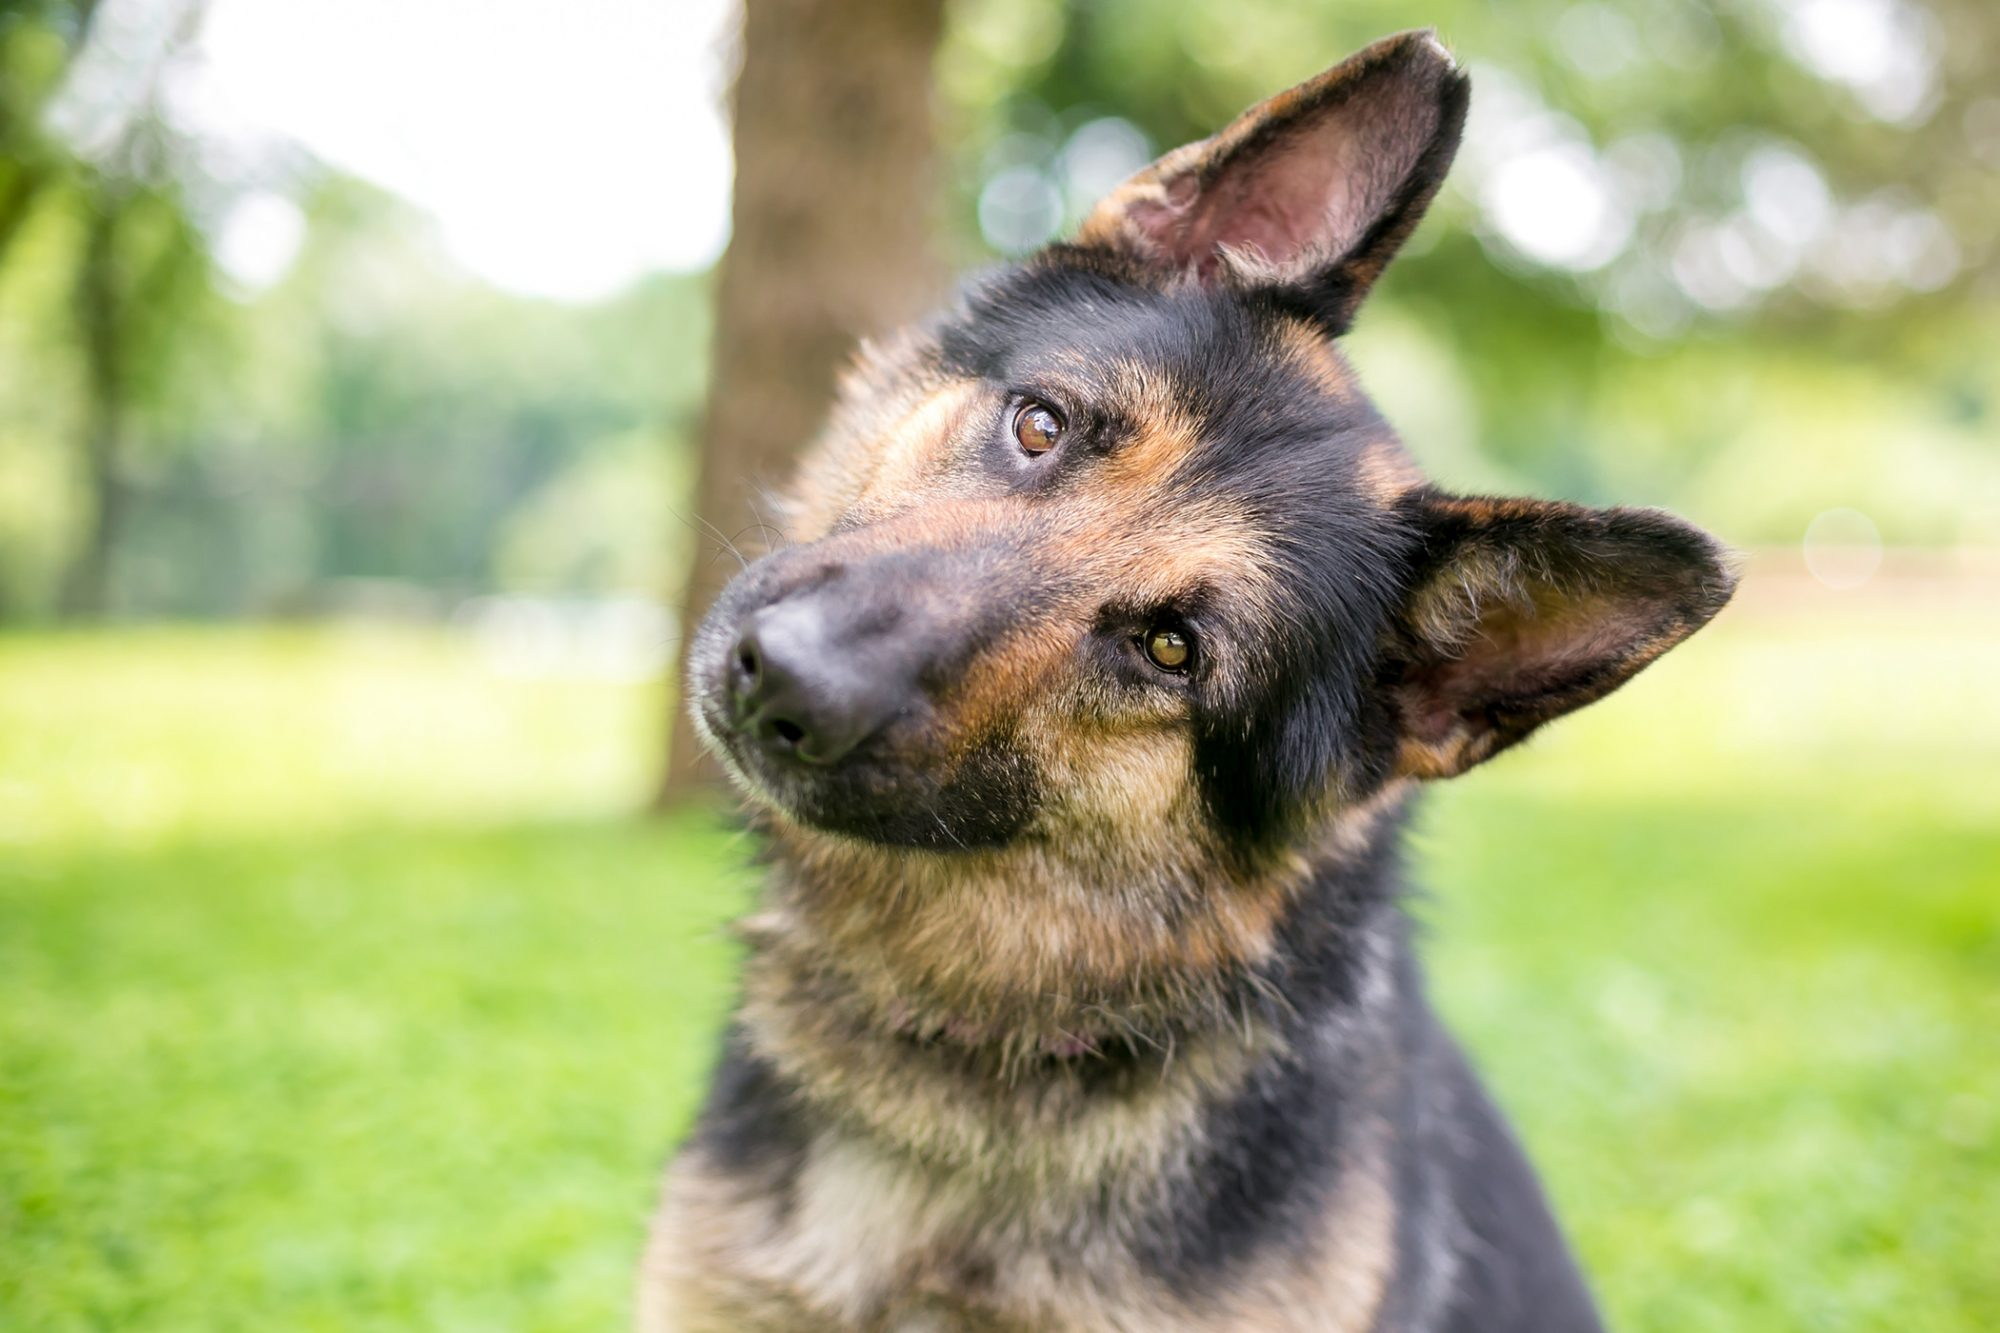 German shepherd tilts head at camera